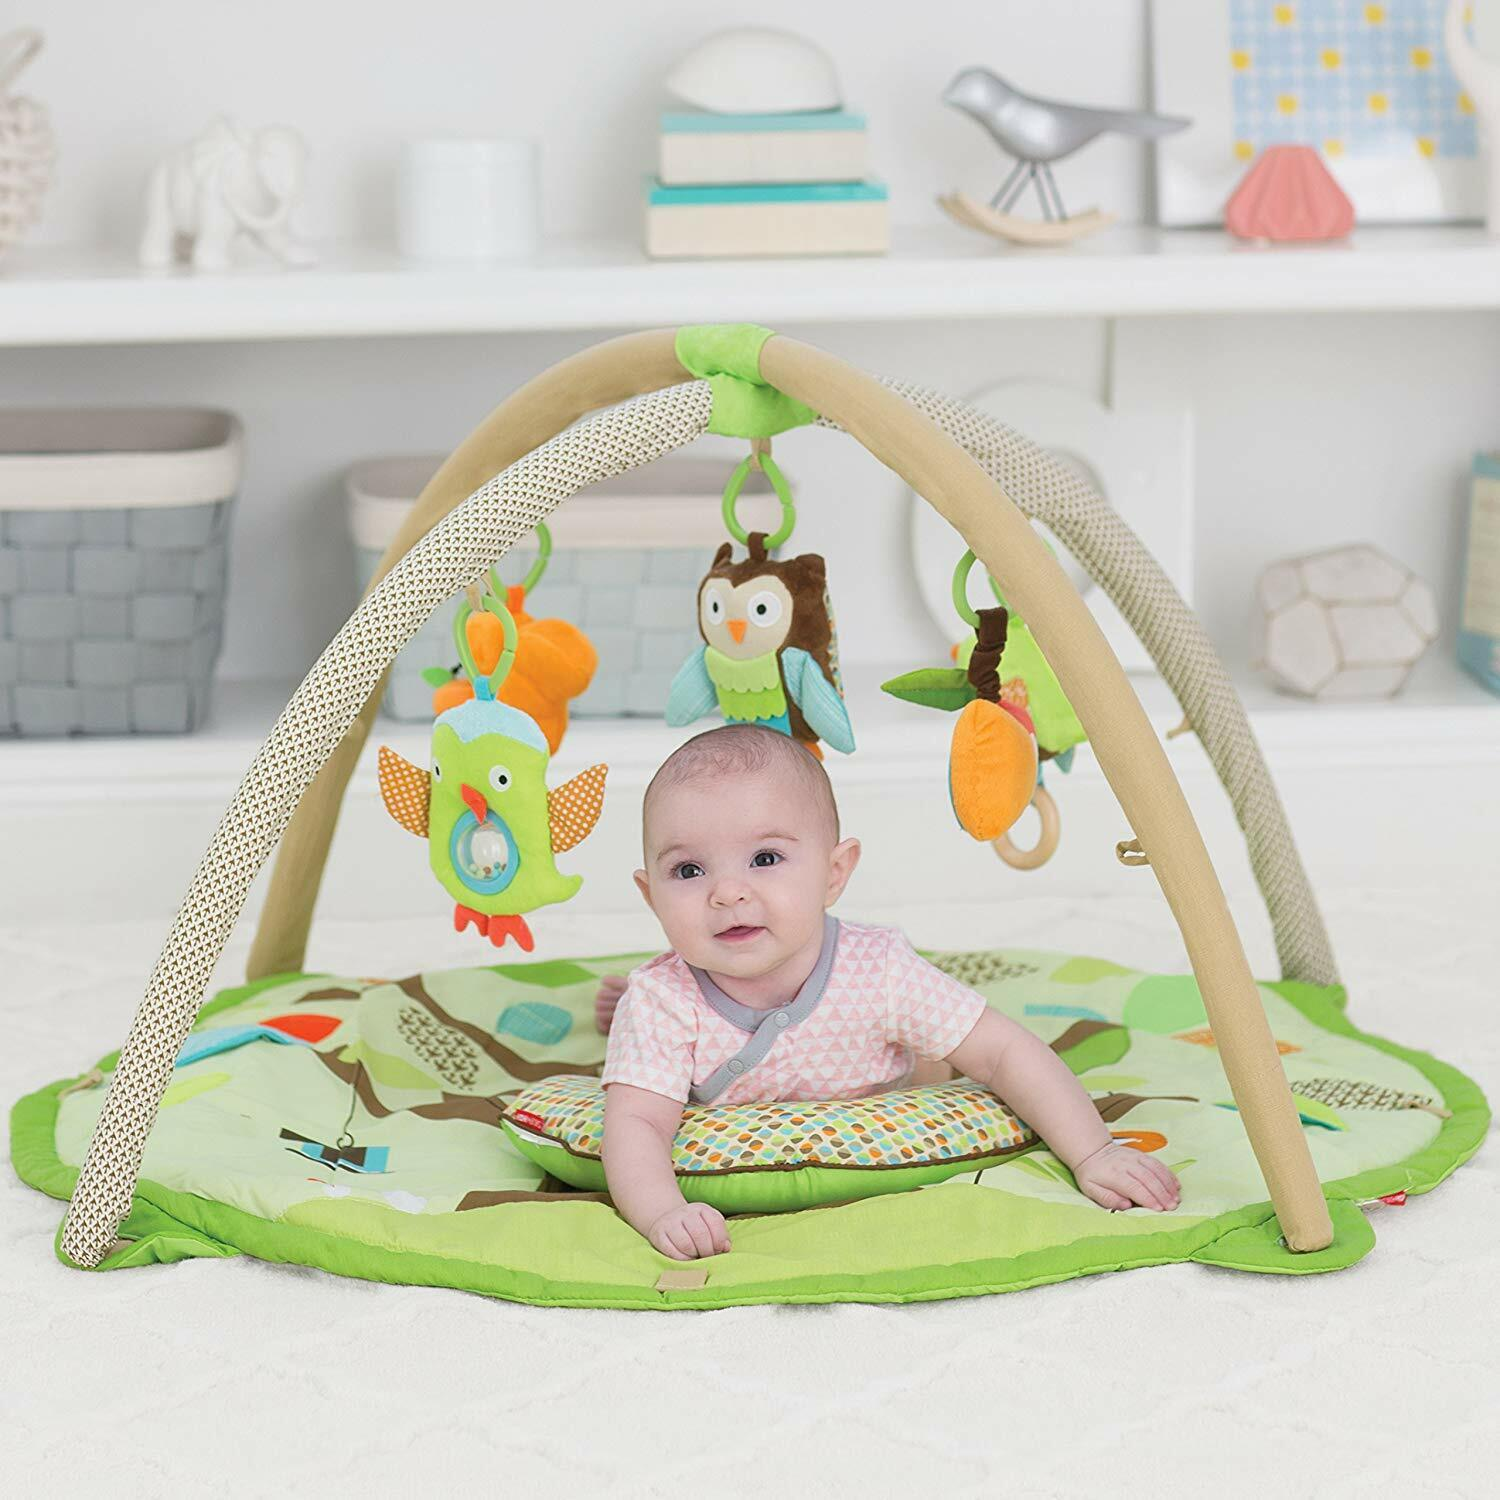 Skip Hop Baby Treetop Friends Activity Gym/Playmat, Multi 3D